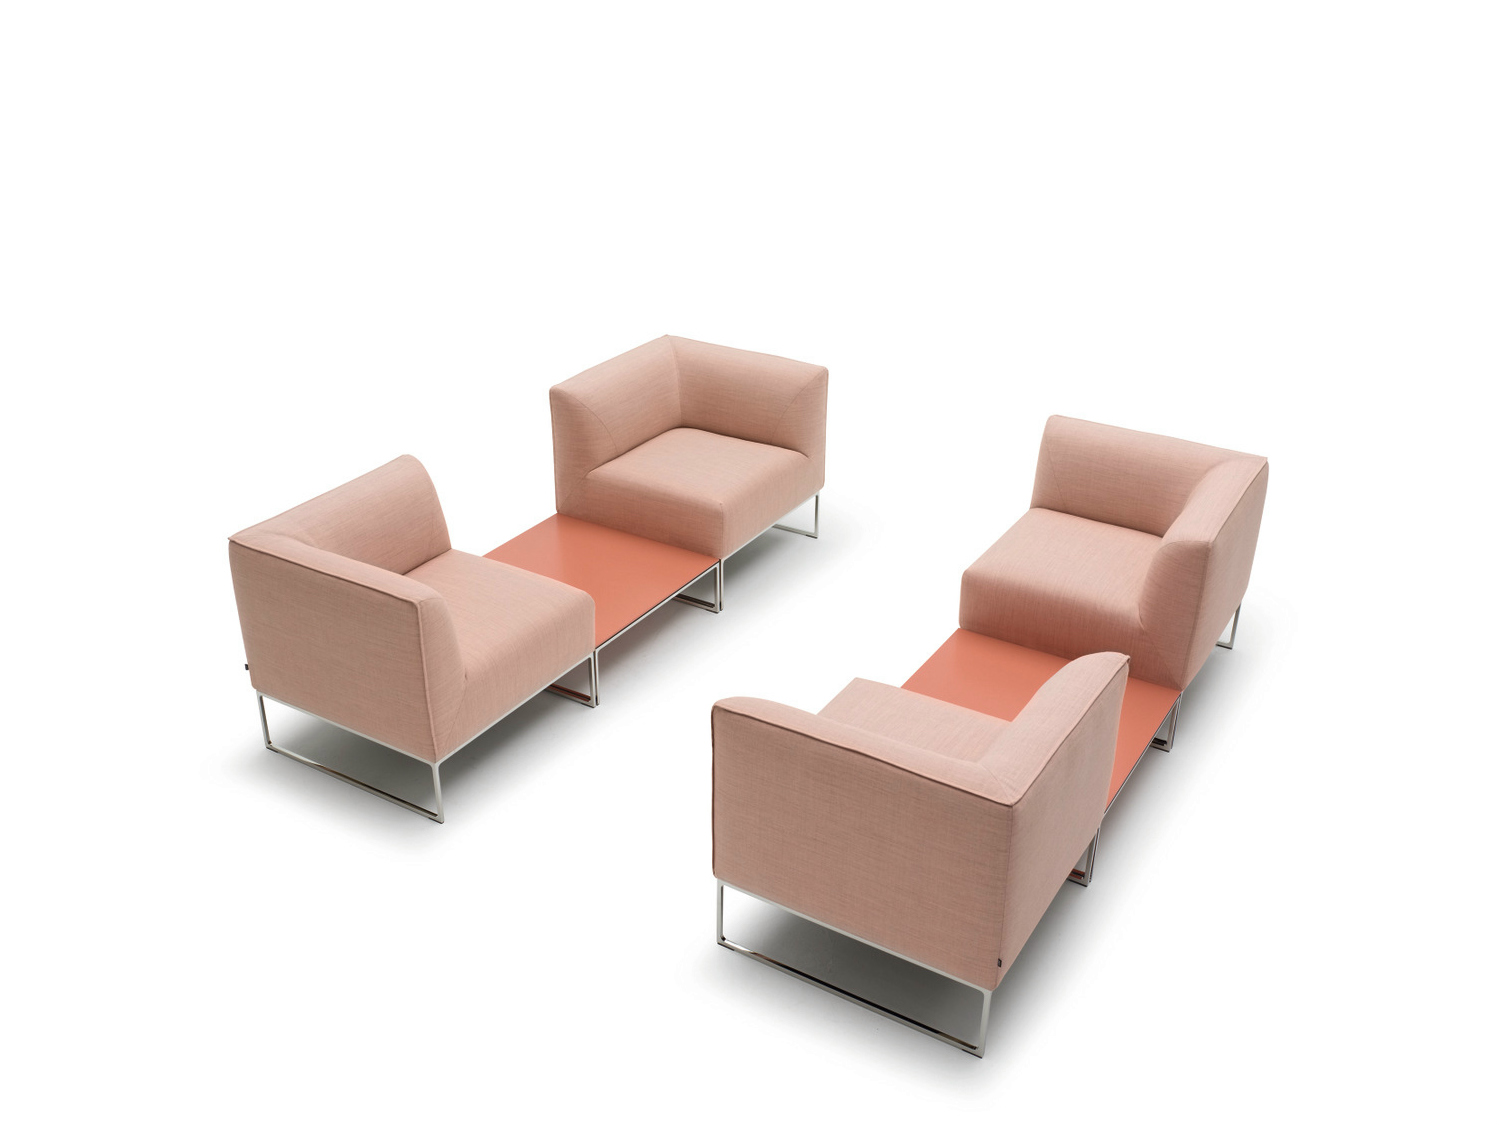 Mell Sectional Sofa By Cor Sitzm 246 Bel Helmut L 252 Bke Design